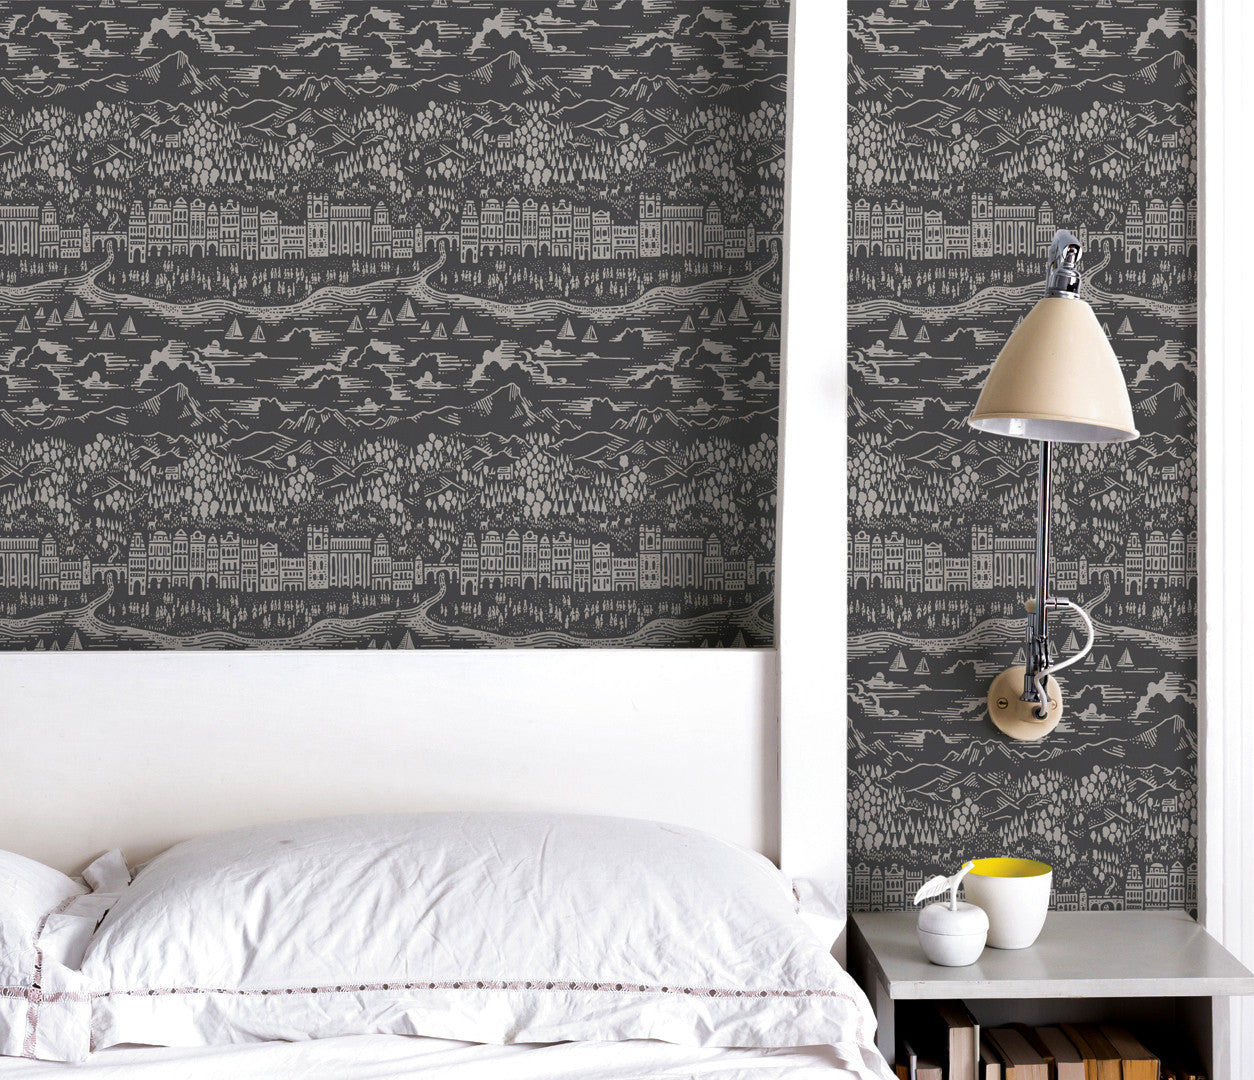 'Province' Town & Country Wallpaper in Graphite